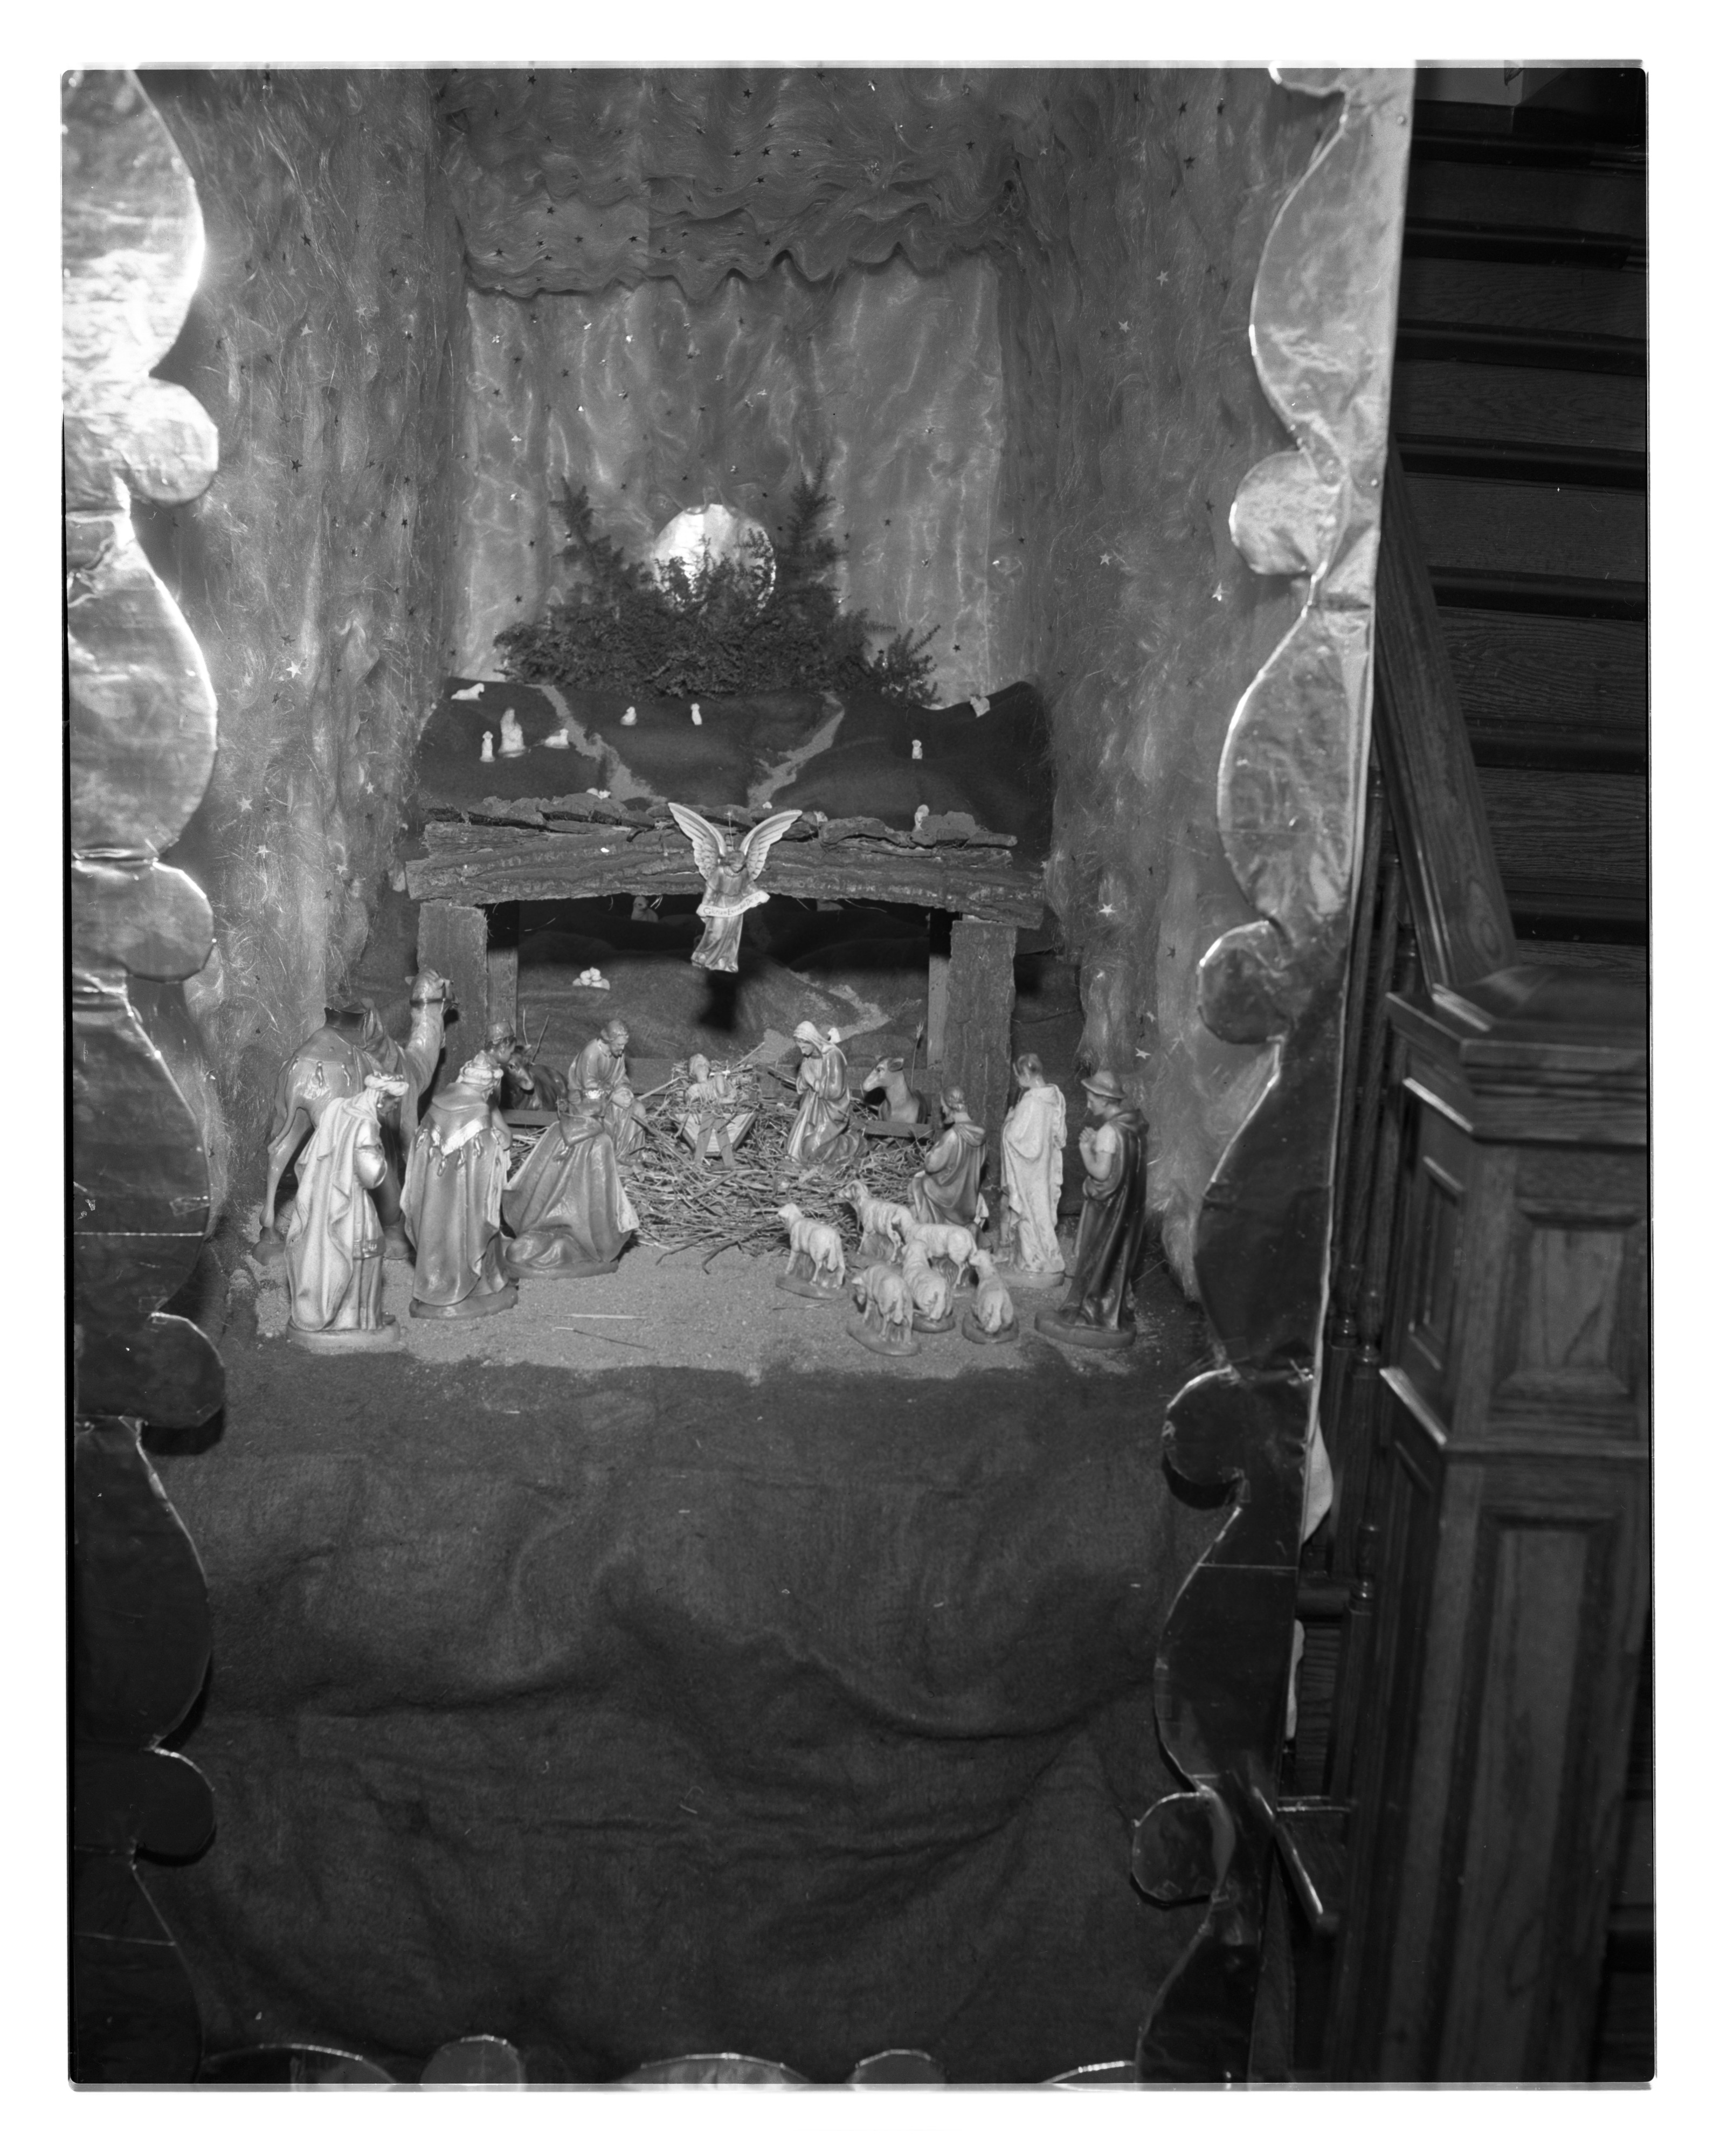 Mr. and Mrs. Fred Hazekamp's Christmas Tableau, December 1948 image